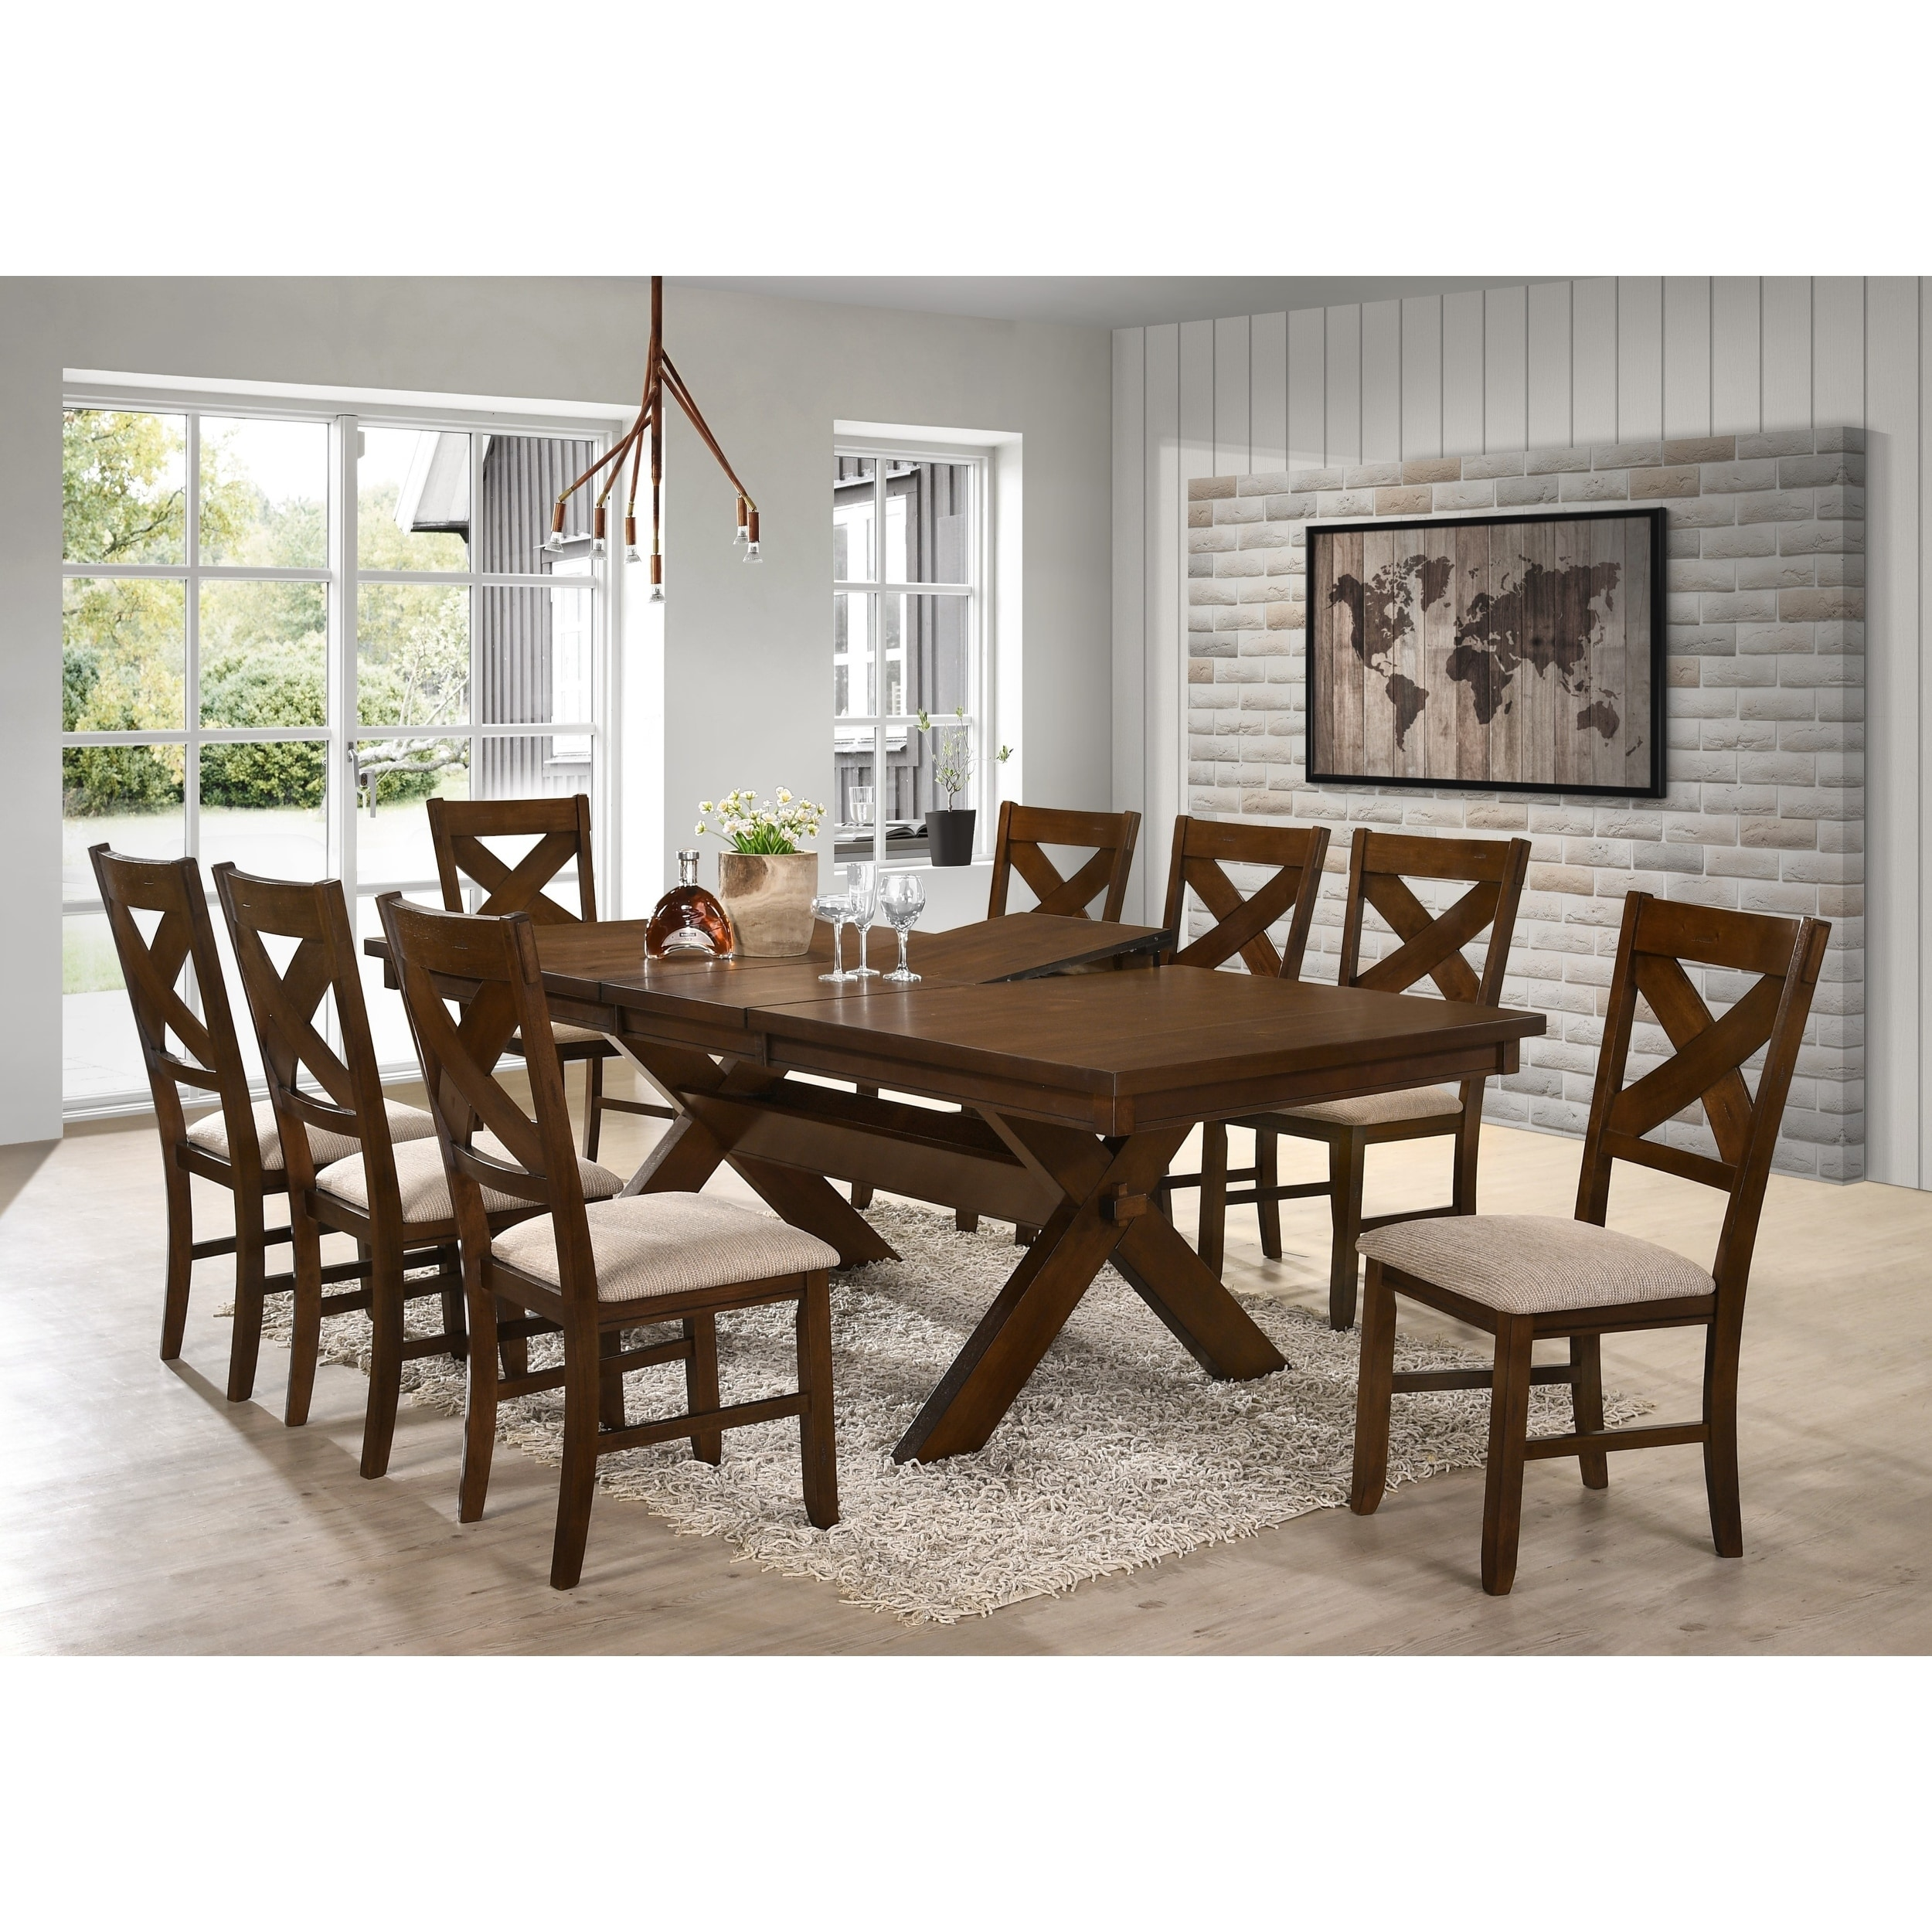 Dining Table 8 Chairs 9 Piece Solid Wood Dining Set With Table And 8 Chairs